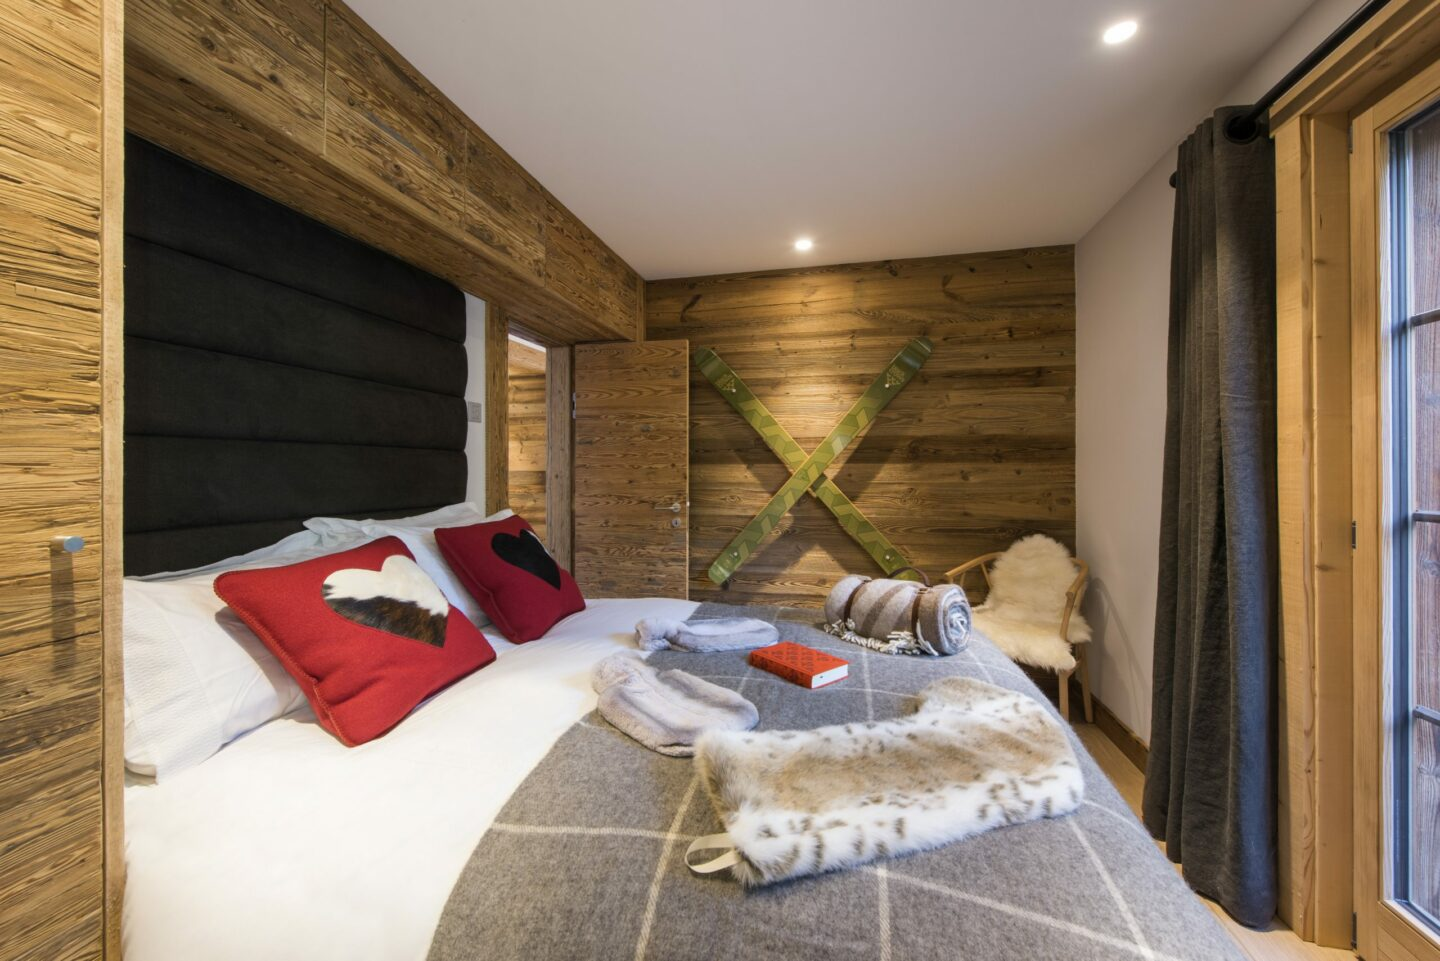 Double bedroom with terrace access at Chalet Daphne in Verbier